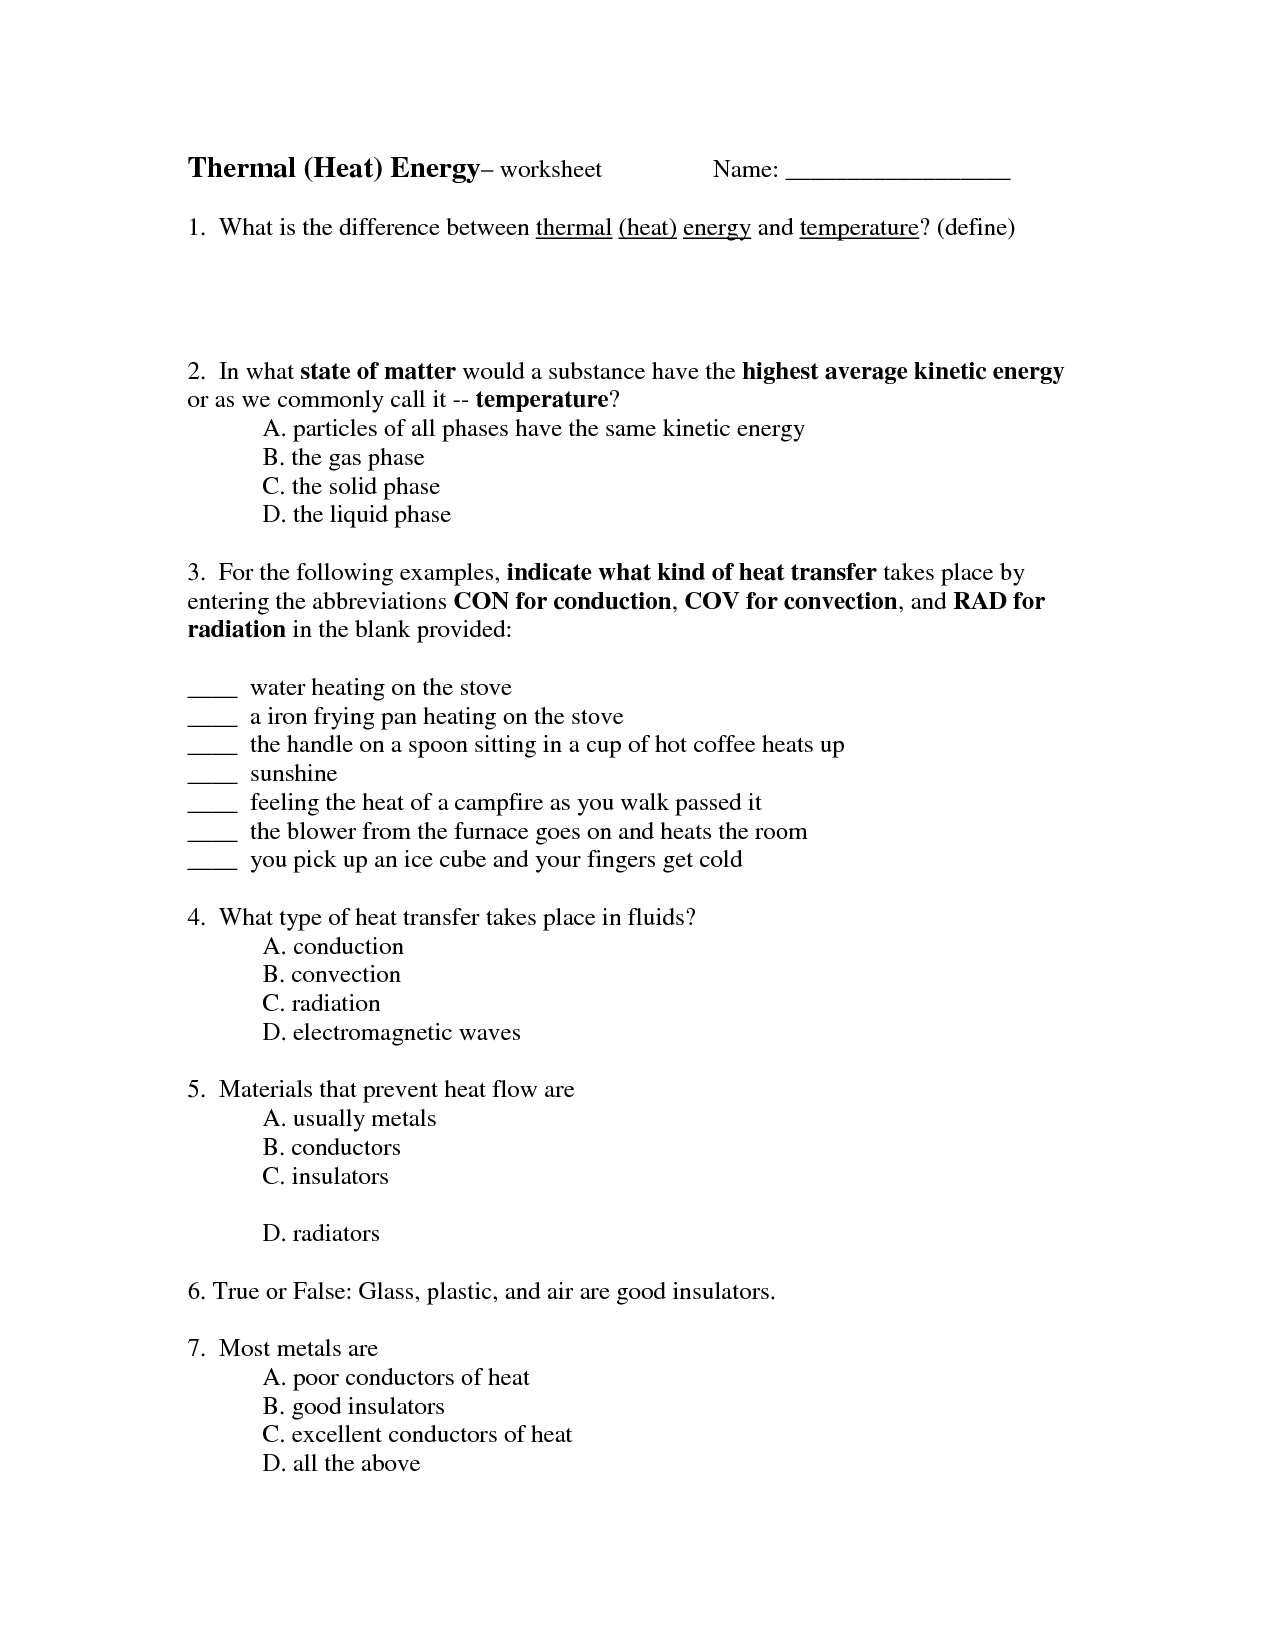 33 Thermal Energy Temperature And Heat Worksheet Answers